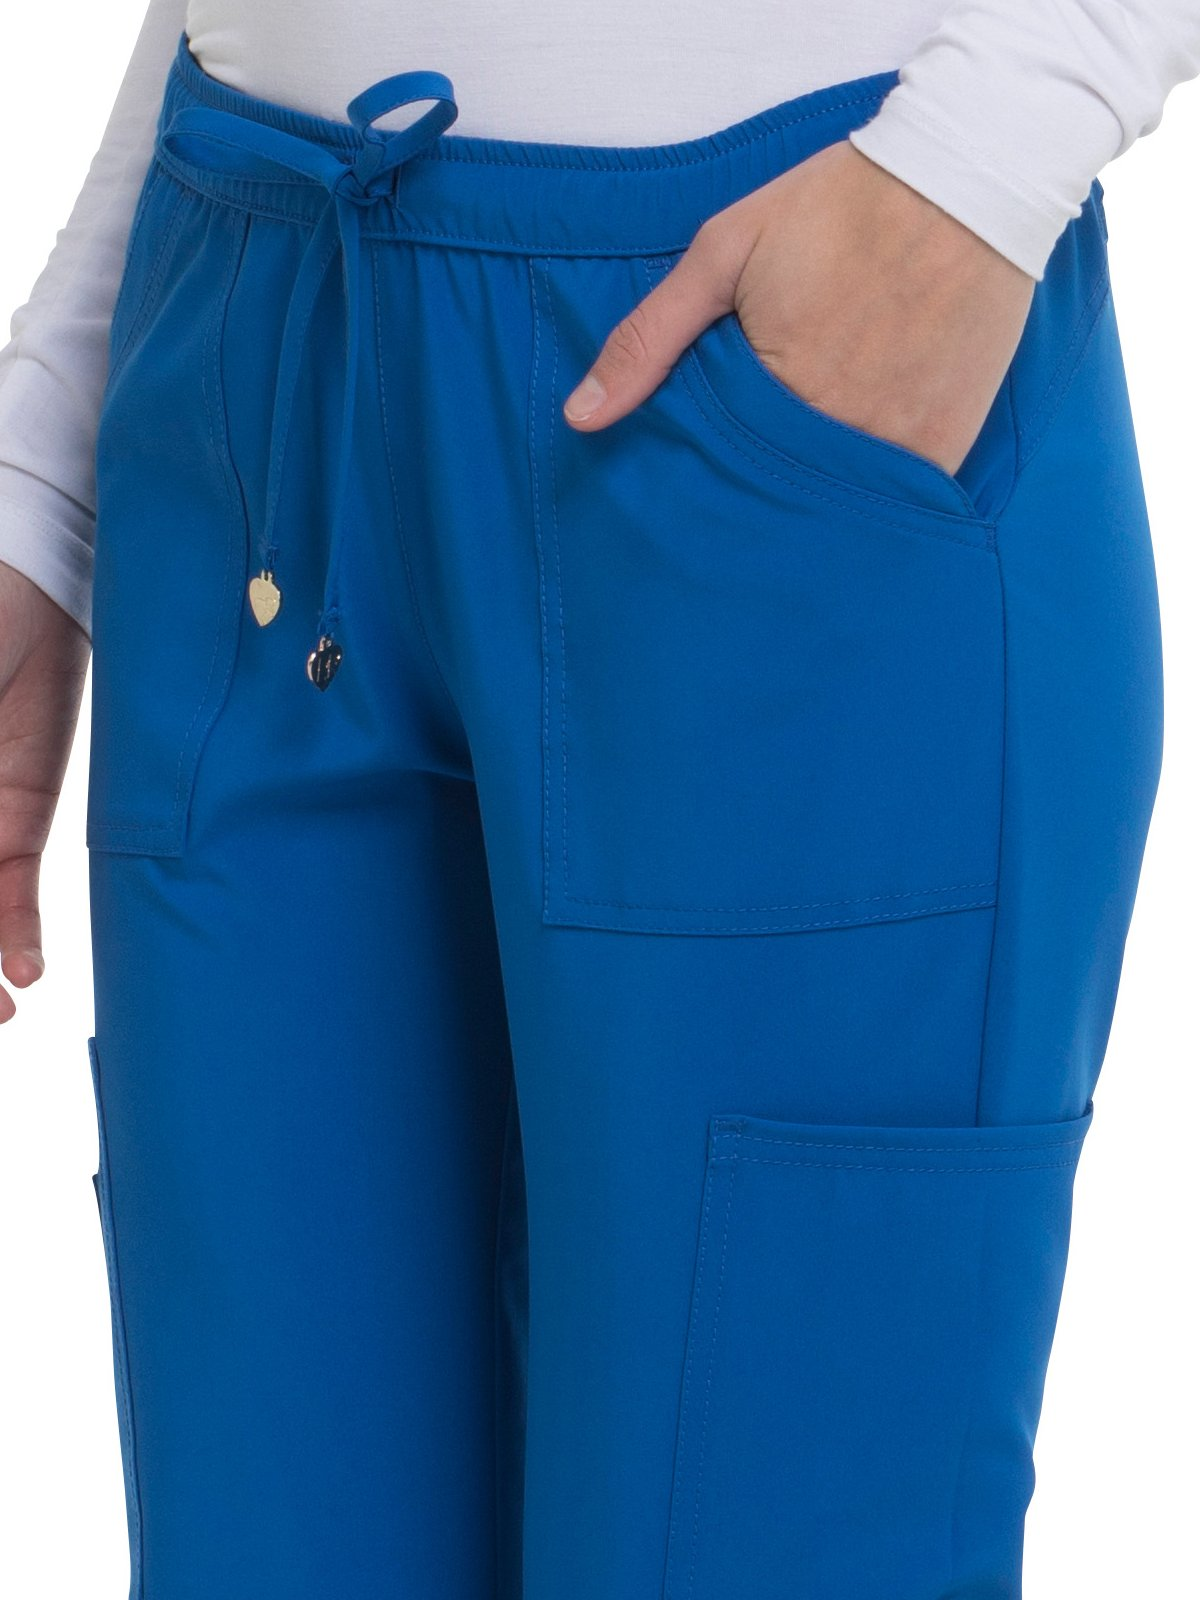 HeartSoul Love Always Women's Charmed Low Rise Drawstring Cargo Scrub Pant Small Royal by HeartSoul (Image #3)